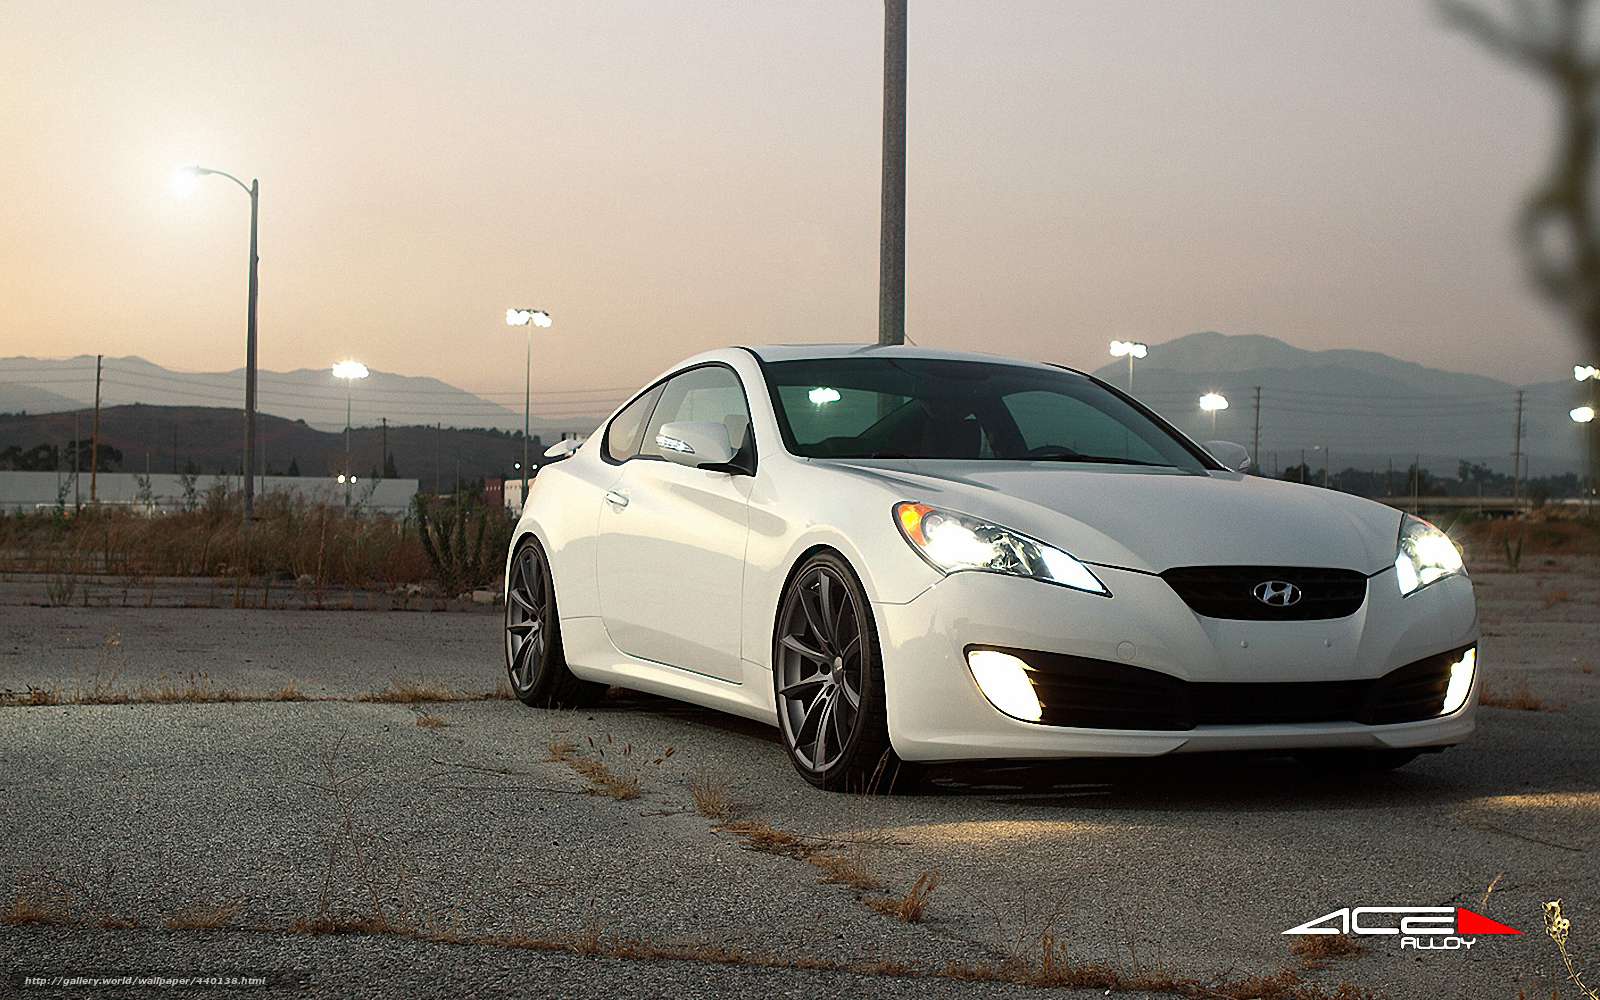 Download wallpaper hyundai genesis coupe white free desktop wallpaper in the resolution 1600x1000 picture 440138